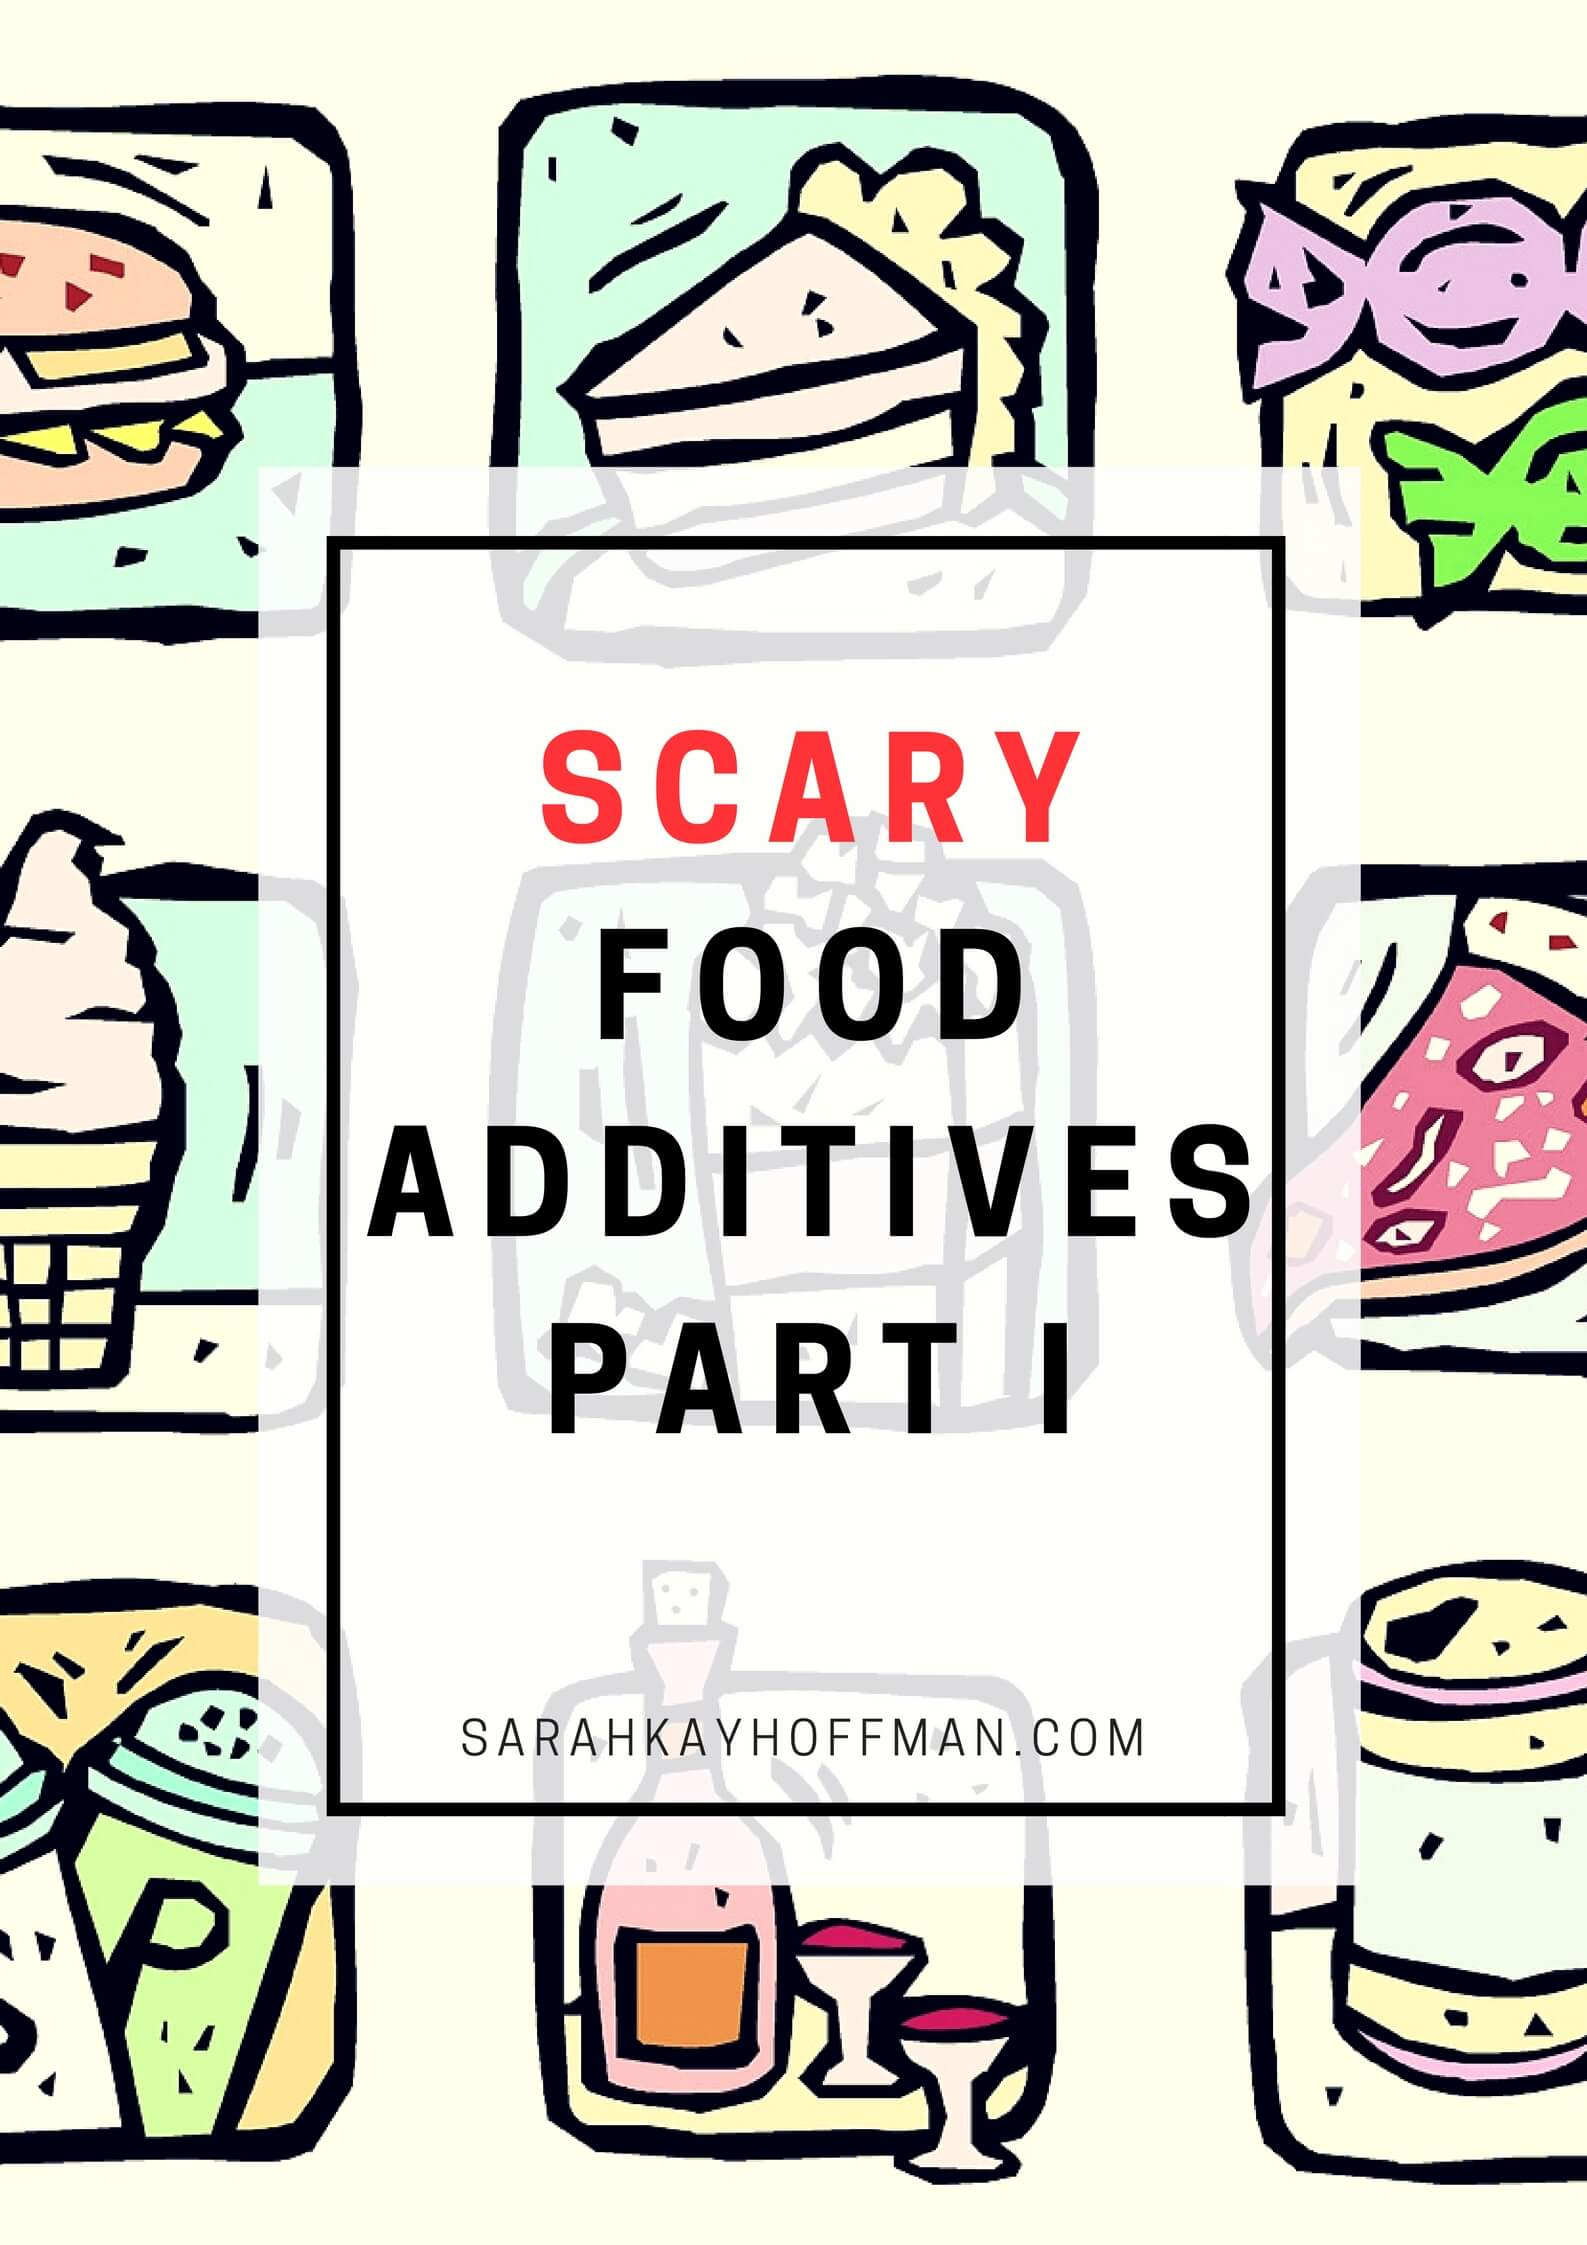 Scary Food Additives Part I sarahkayhoffman.com IBS IBD #healthyliving #guthealth #food #gmos